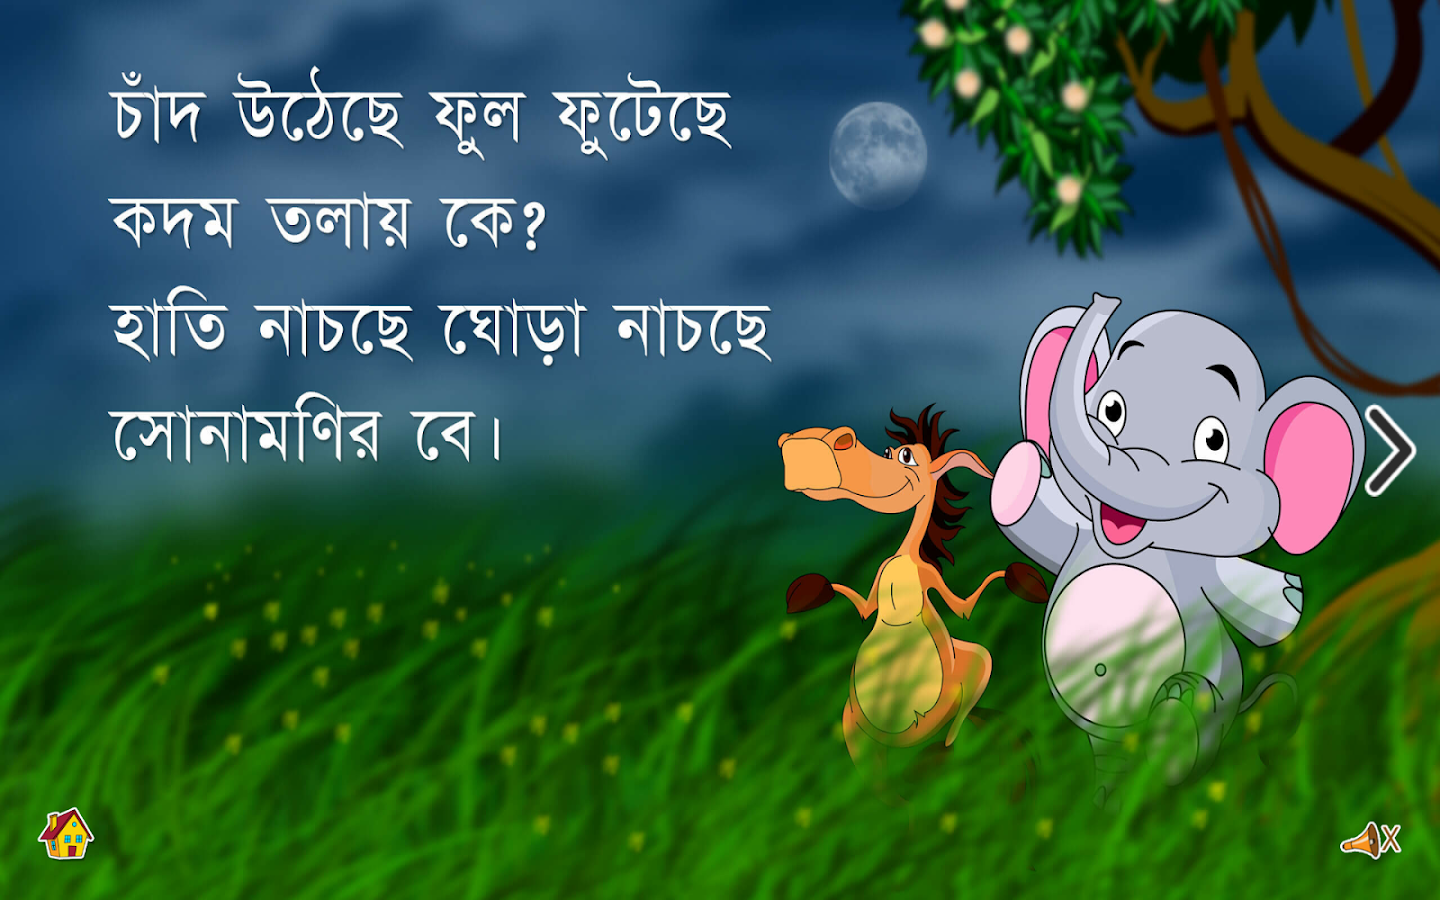 Barnoparichay - Bengali - Android Apps on Google Play